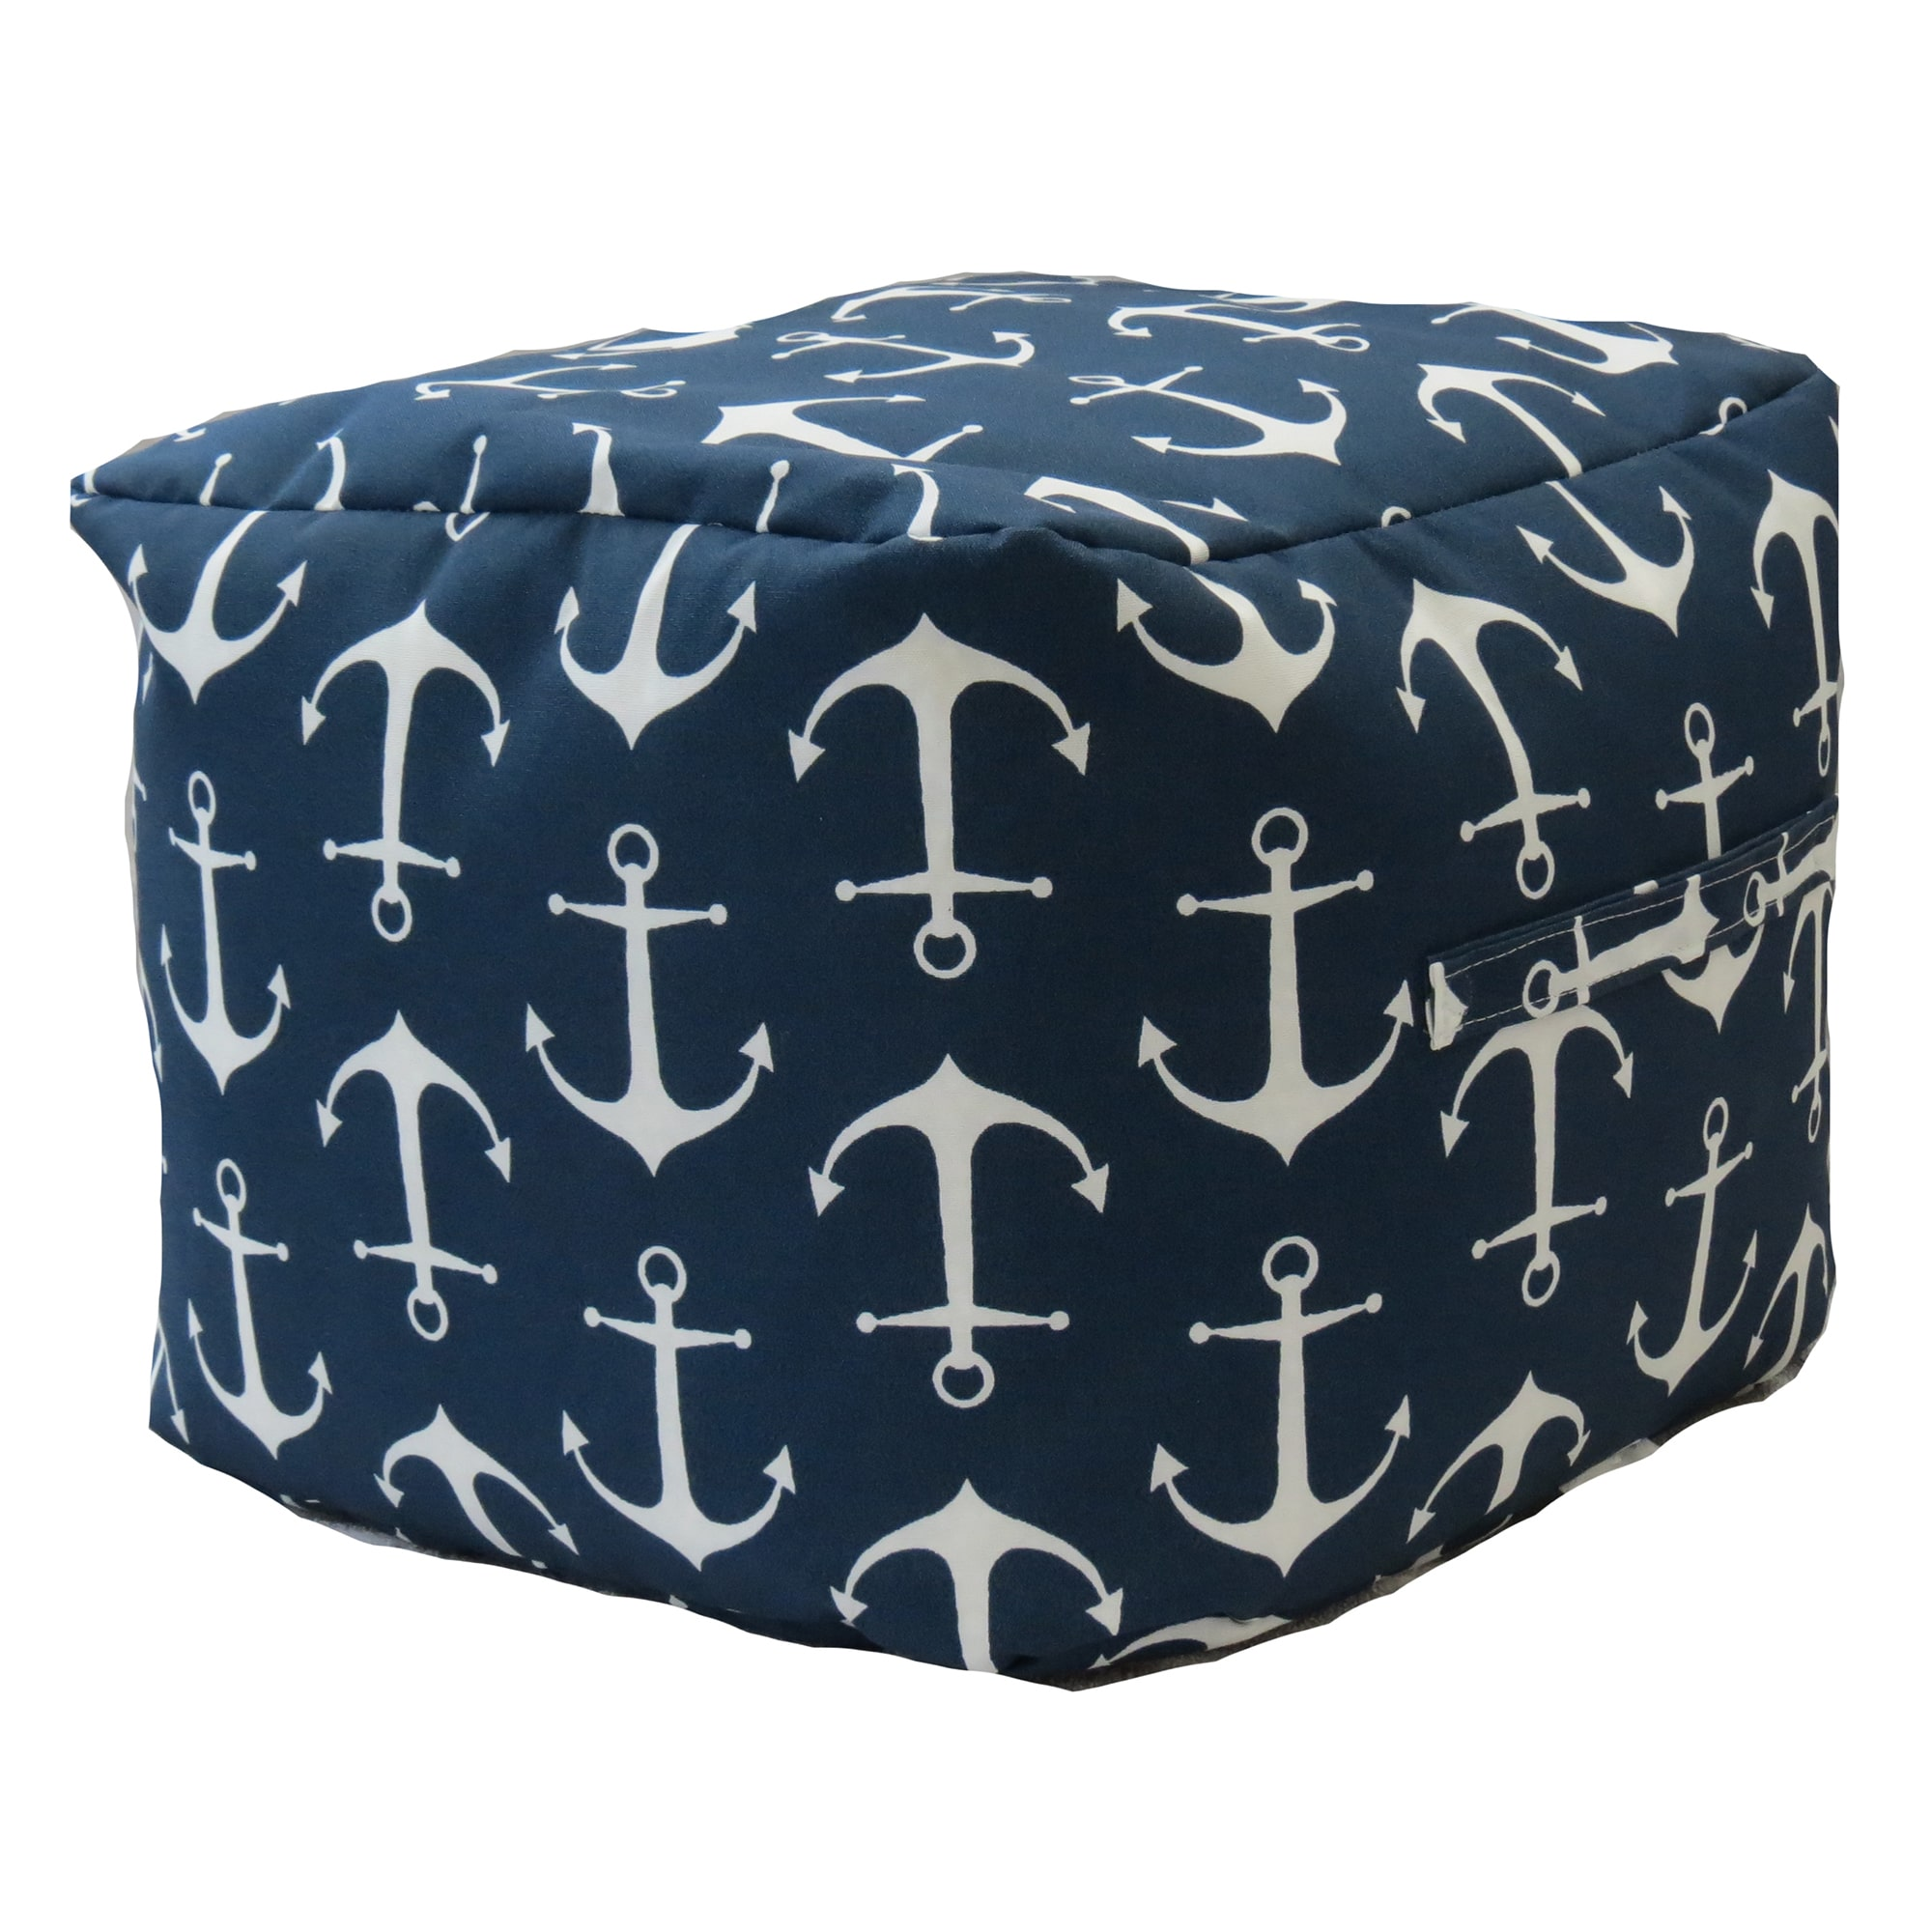 FHT Premiere Home Indoor/Outdoor Sailor Anchor Navy 17 inch Square Pouf Footstool